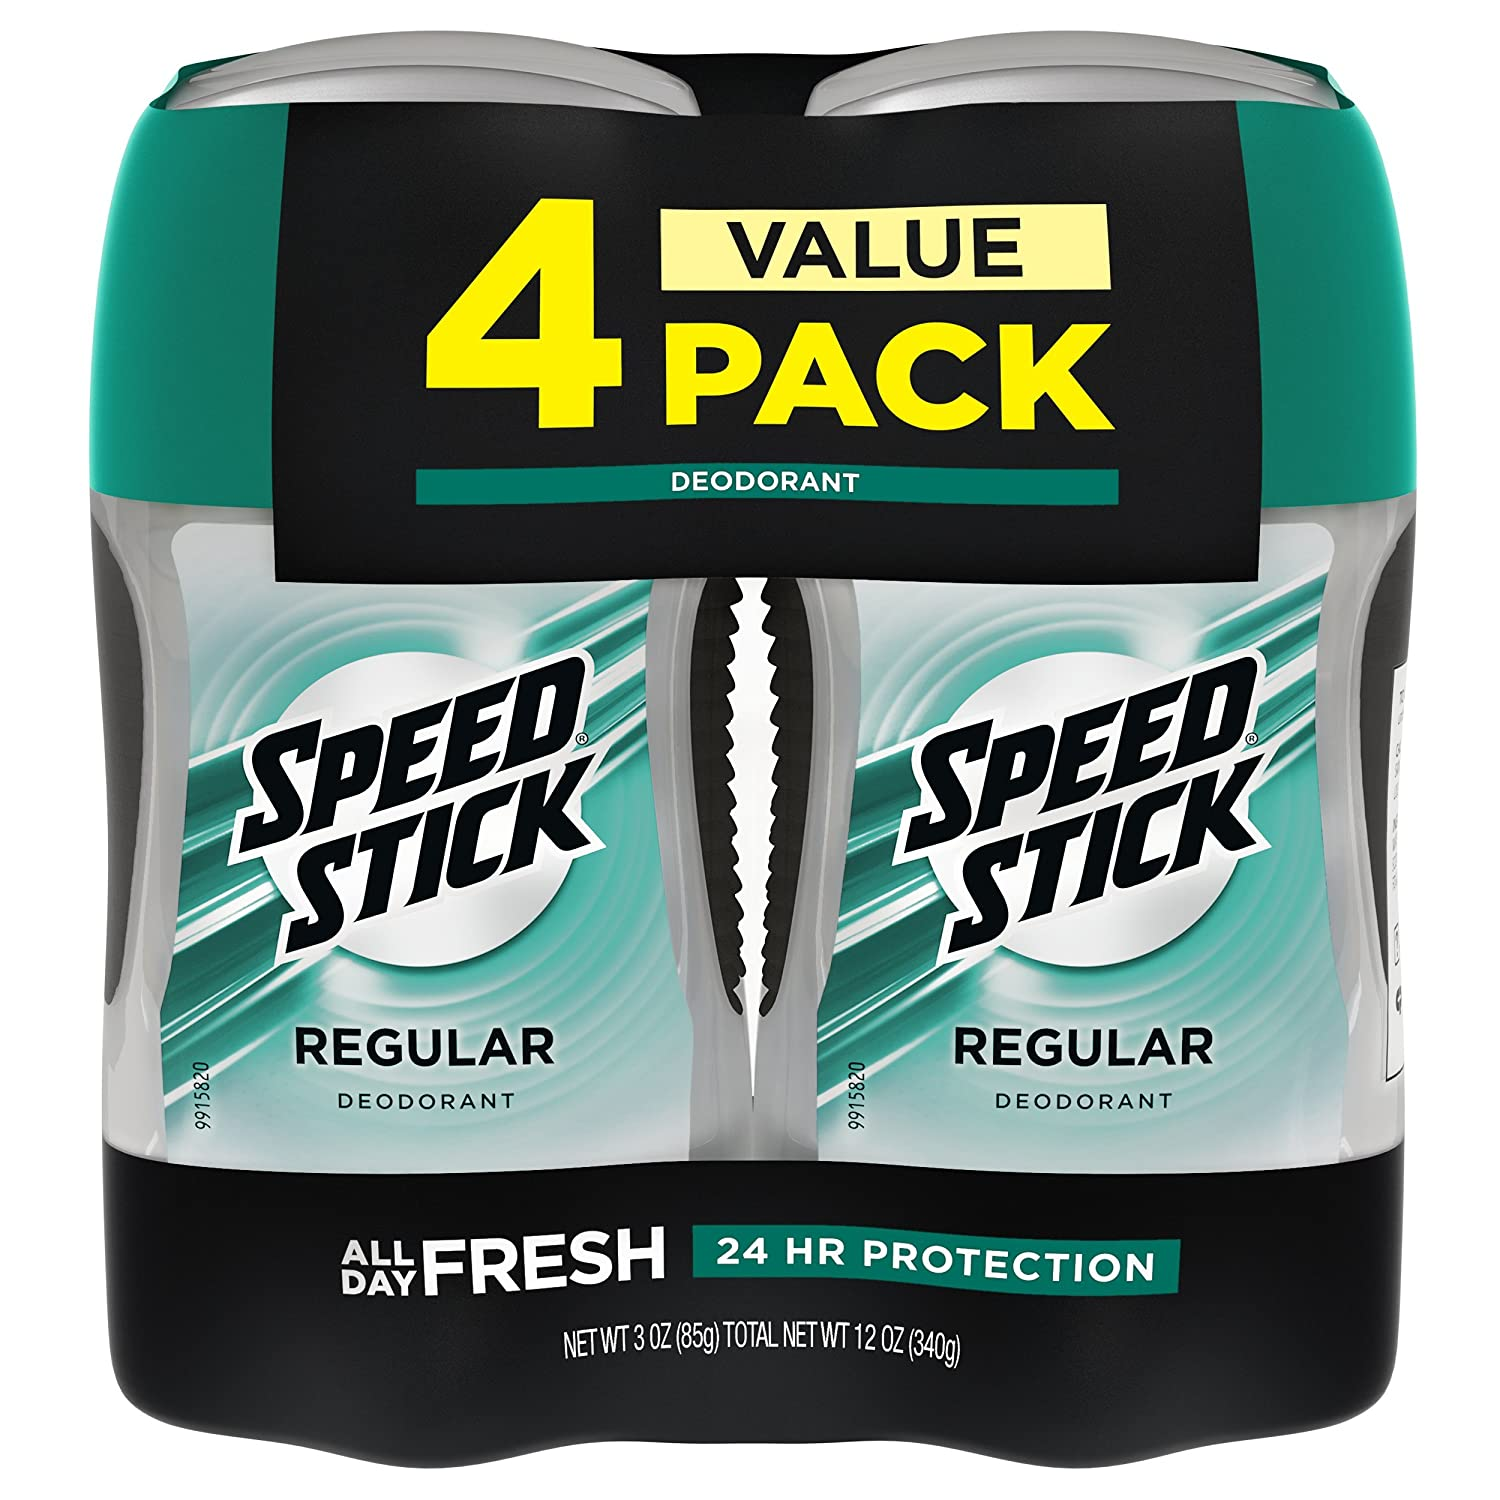 Speed Stick Deodorant for Men, Aluminum Free, Regular - 3 Ounce (4 Pack) : Beauty